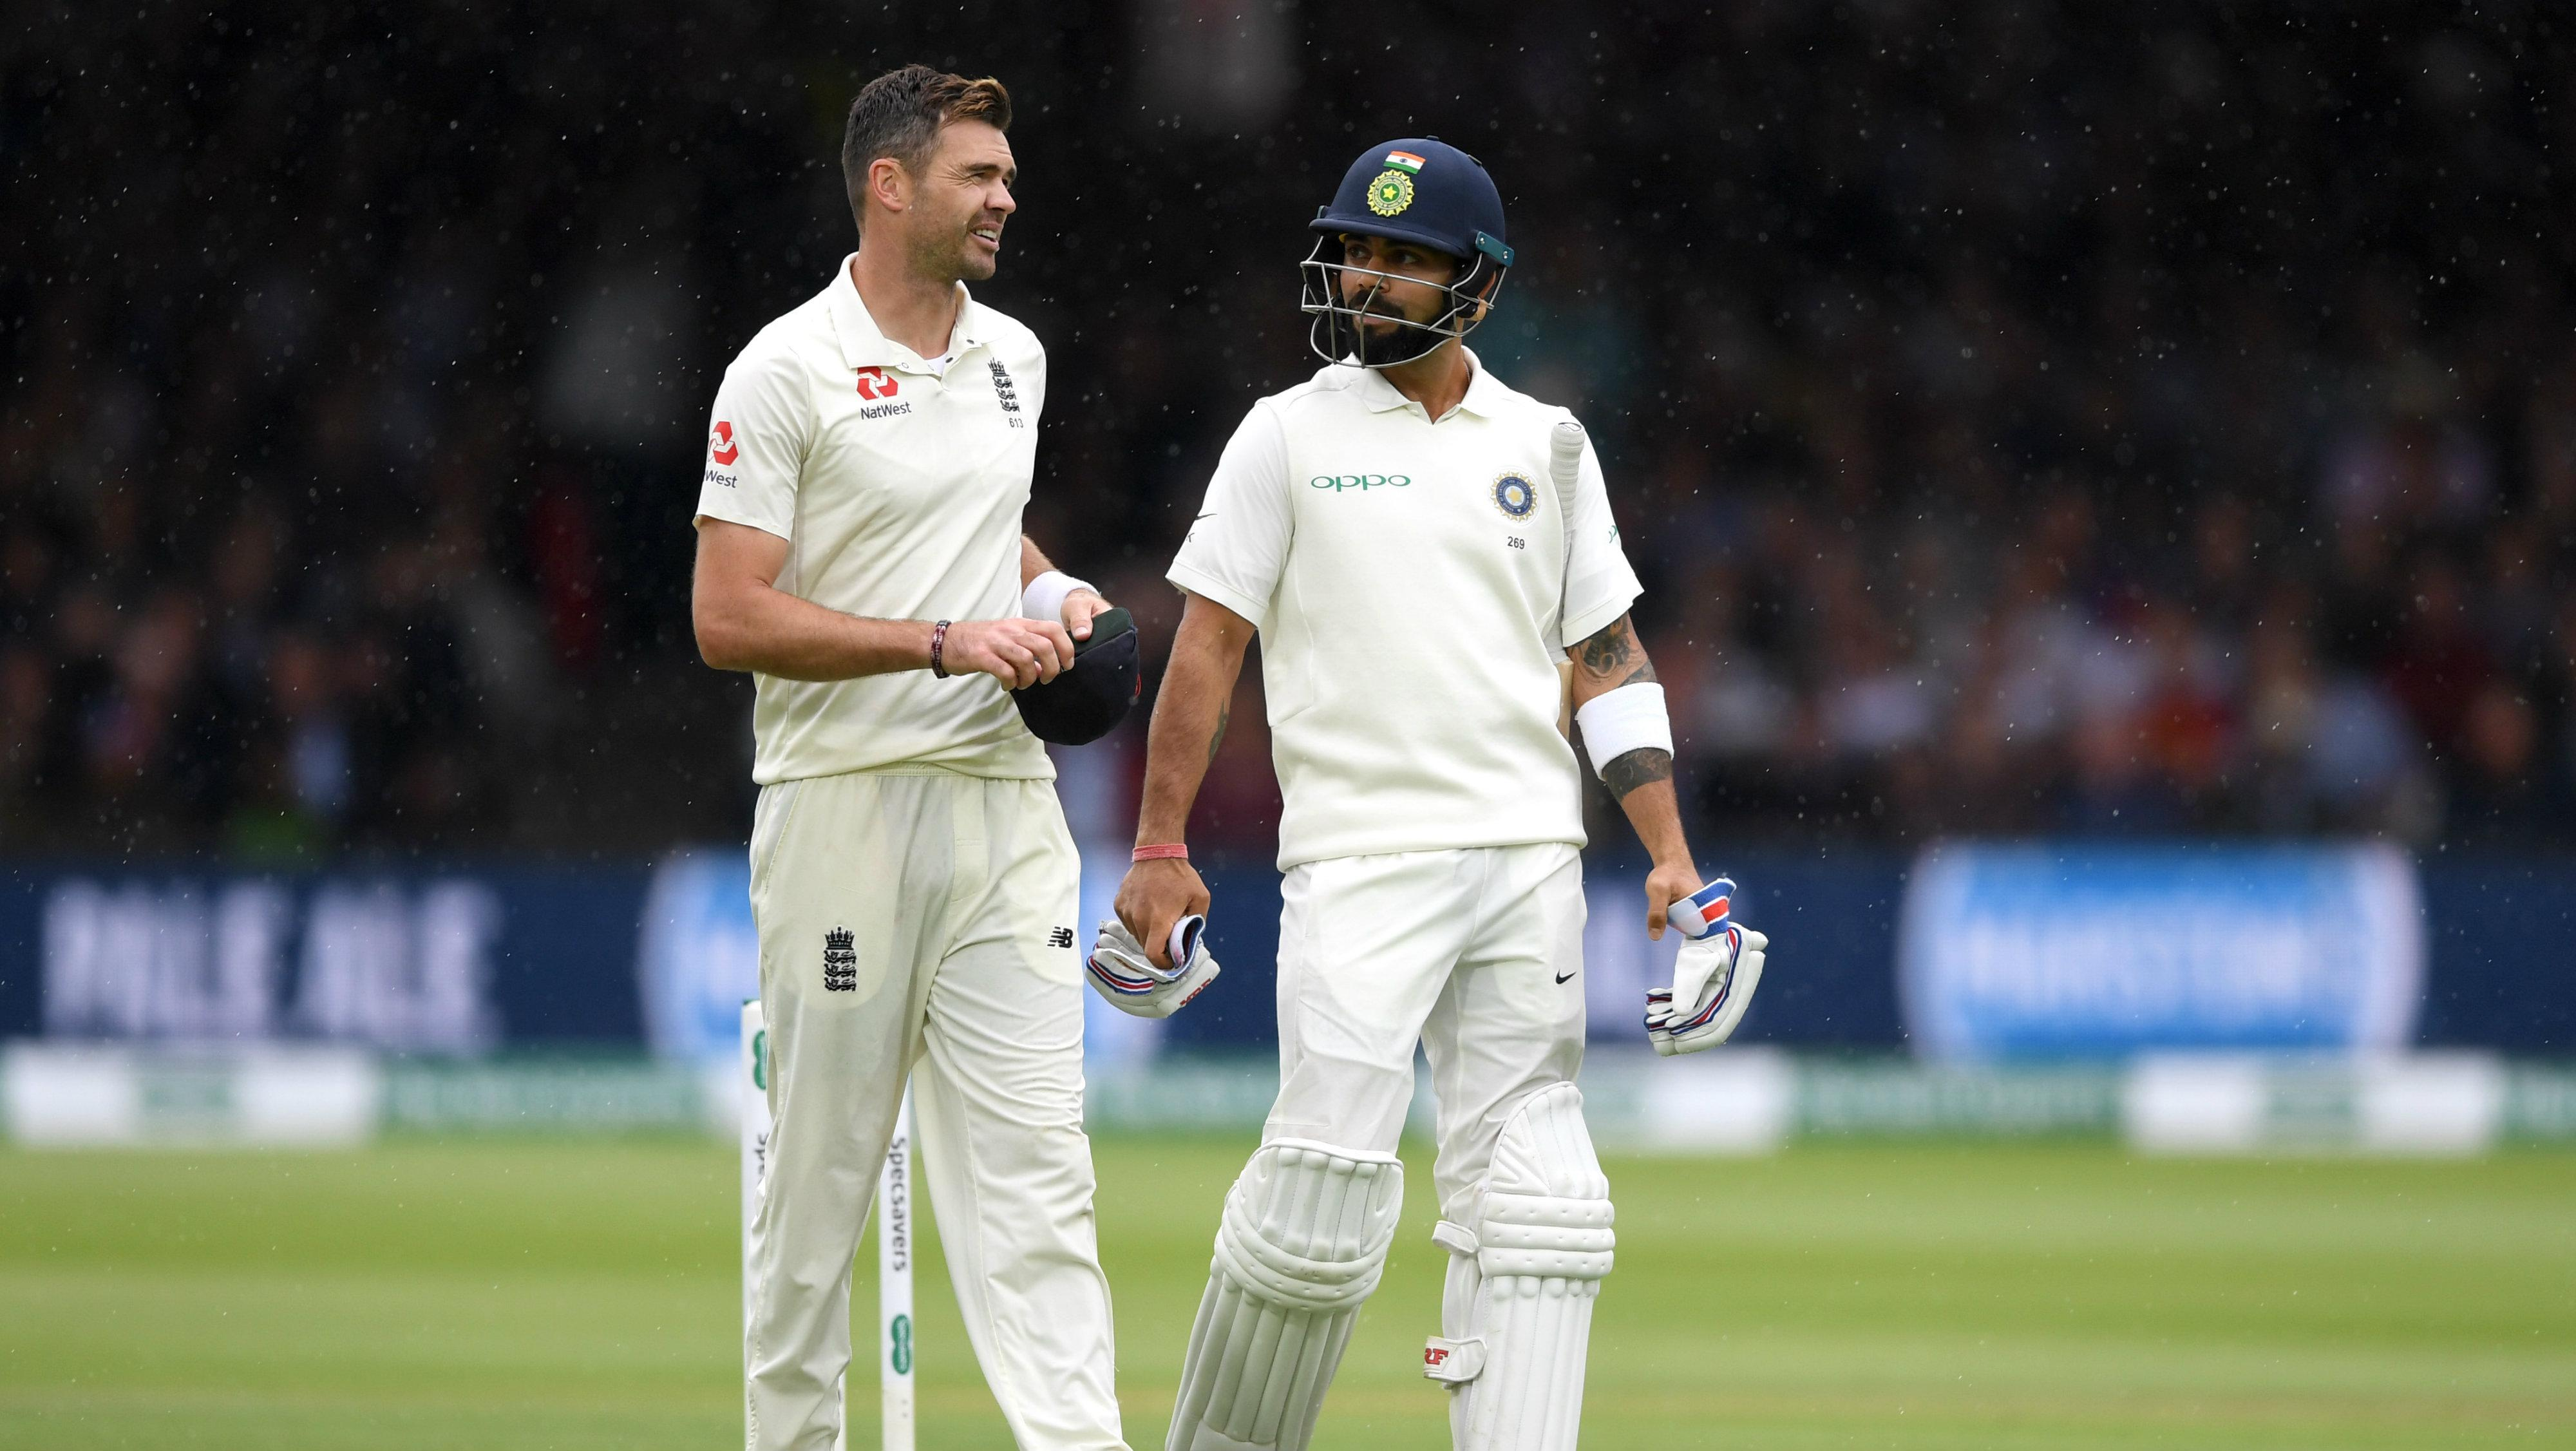 Why can't he edge them like everyone else?' – Anderson on Kohli